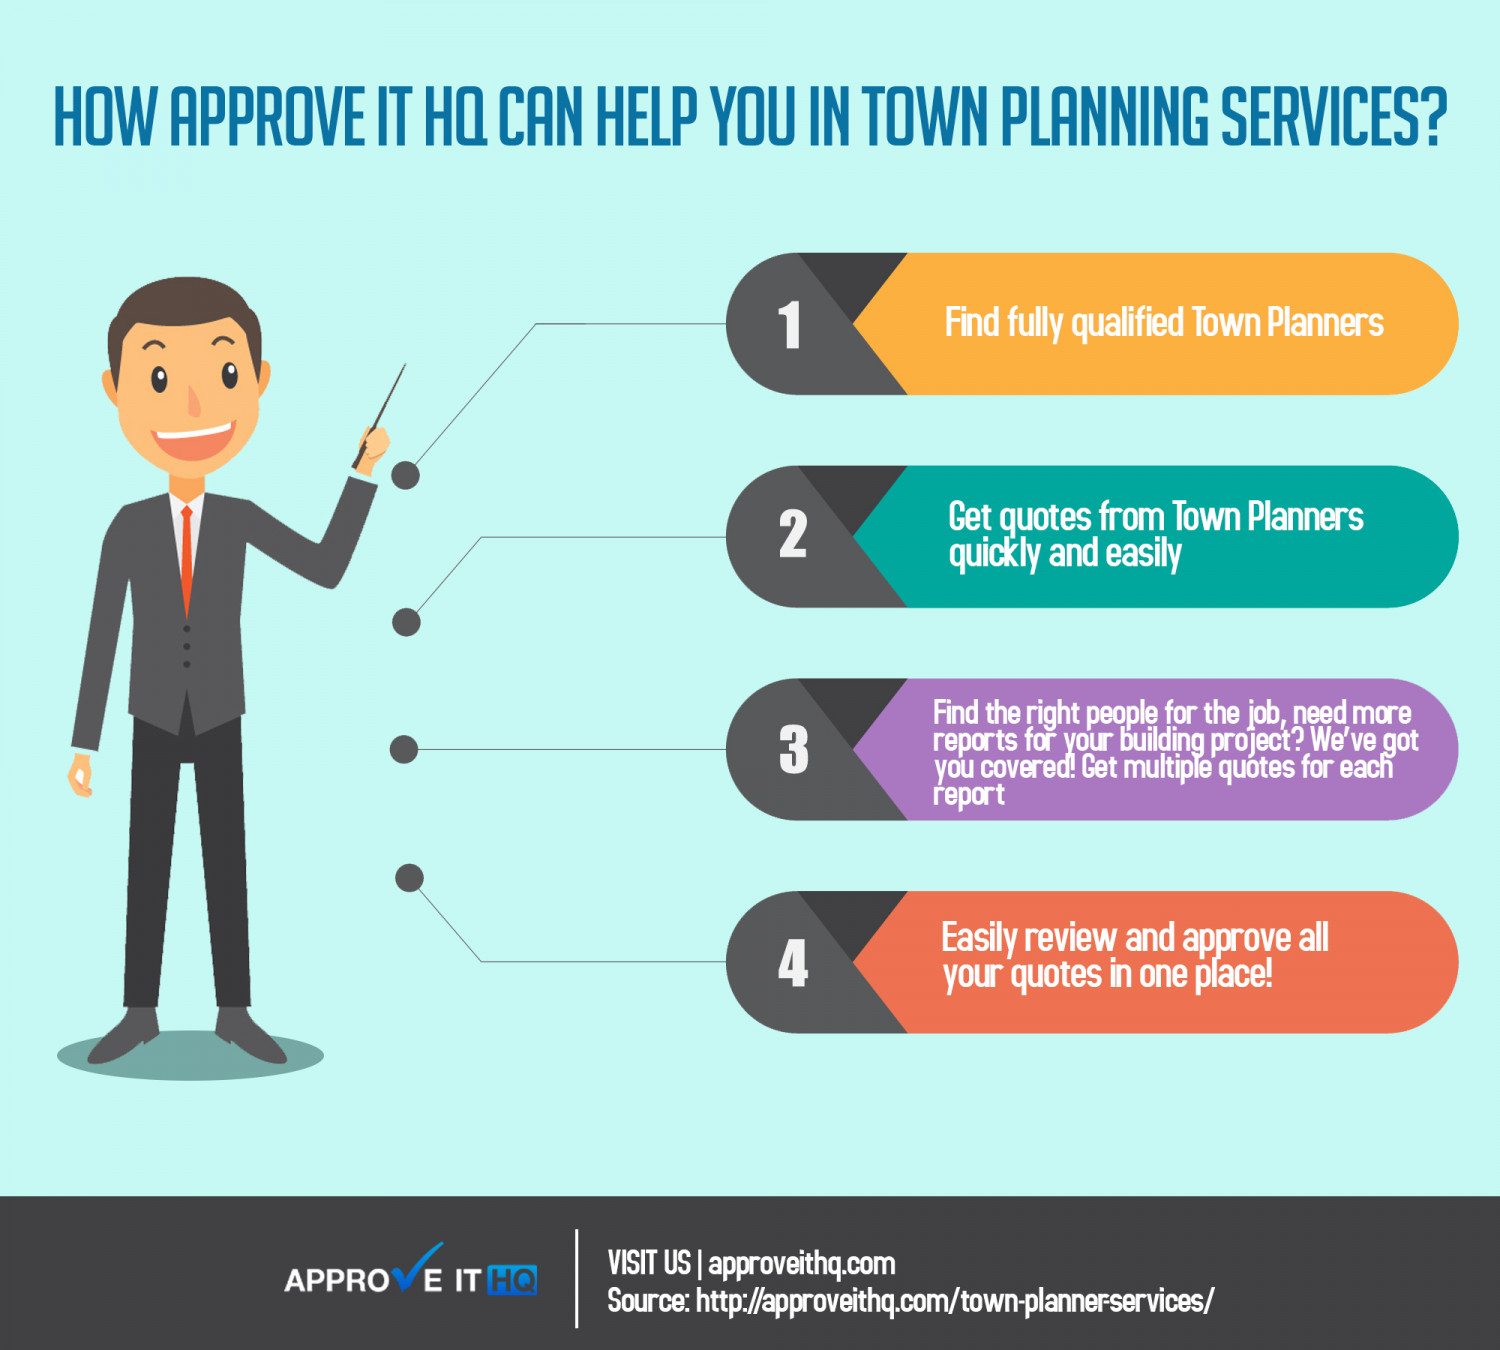 How Approve IT HQ Can Help You in Town Planning Services? Infographic